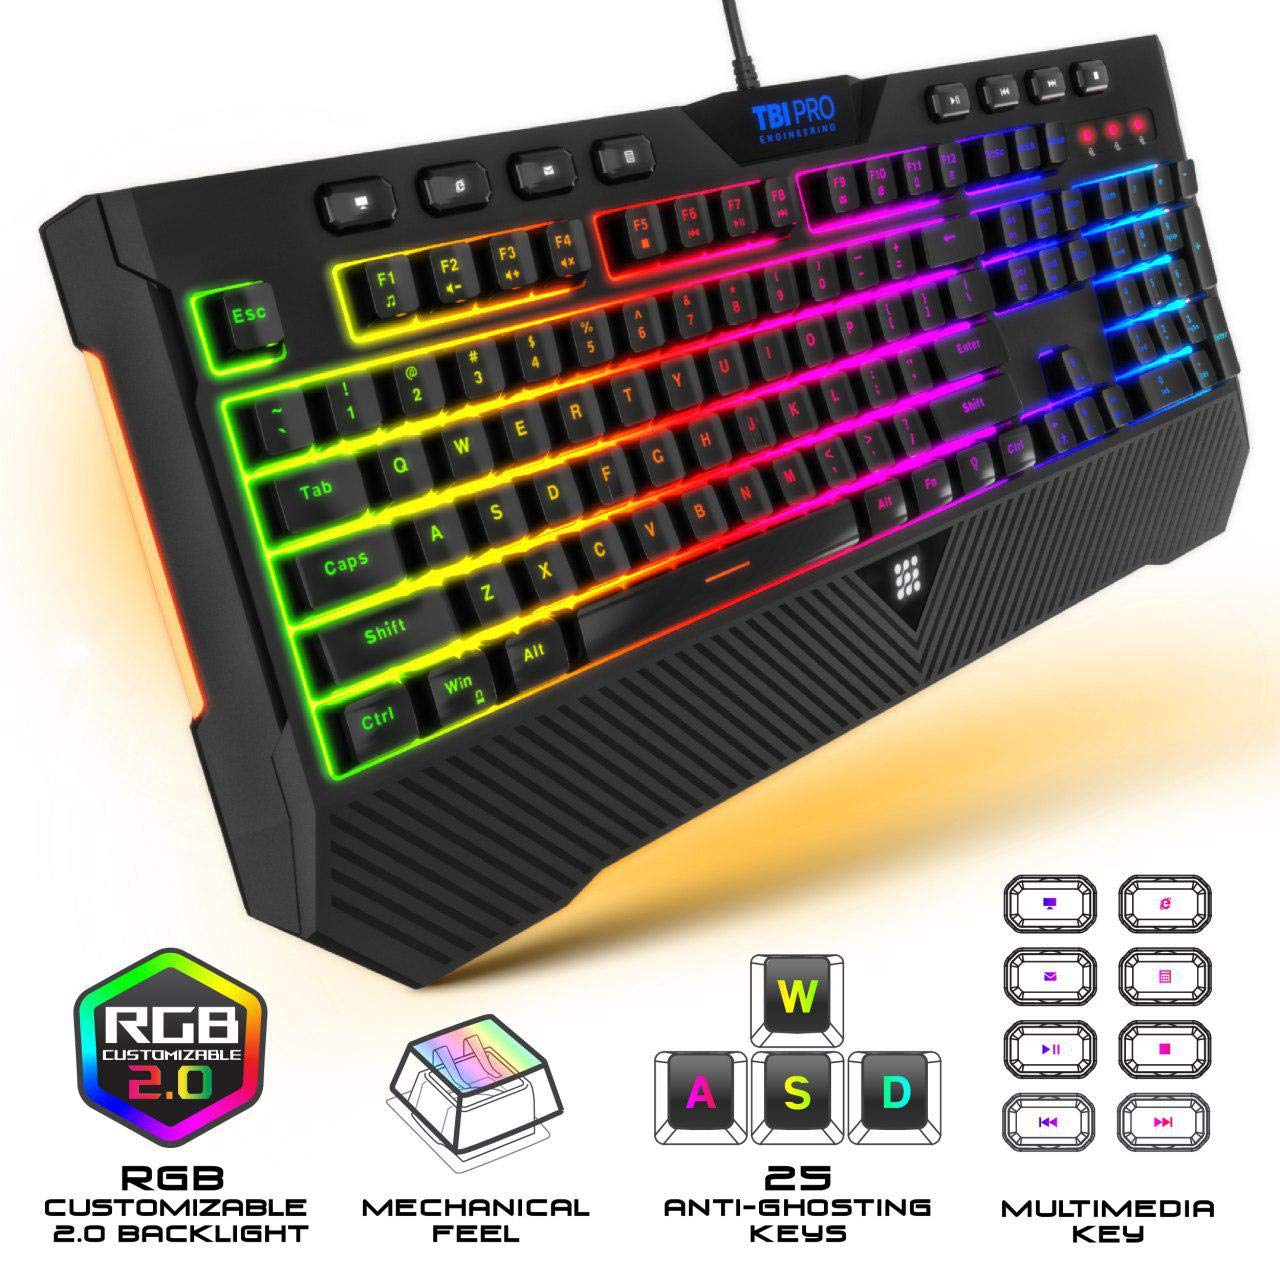 Best Wireless Keyboard 2020.Upgraded 2020 Gaming Membrane Keyboard With Mechanical Feel Clicks Led Rgb Backlight 104 Keys 8 Multimedia Ergonomic Stand Anti Ghosting